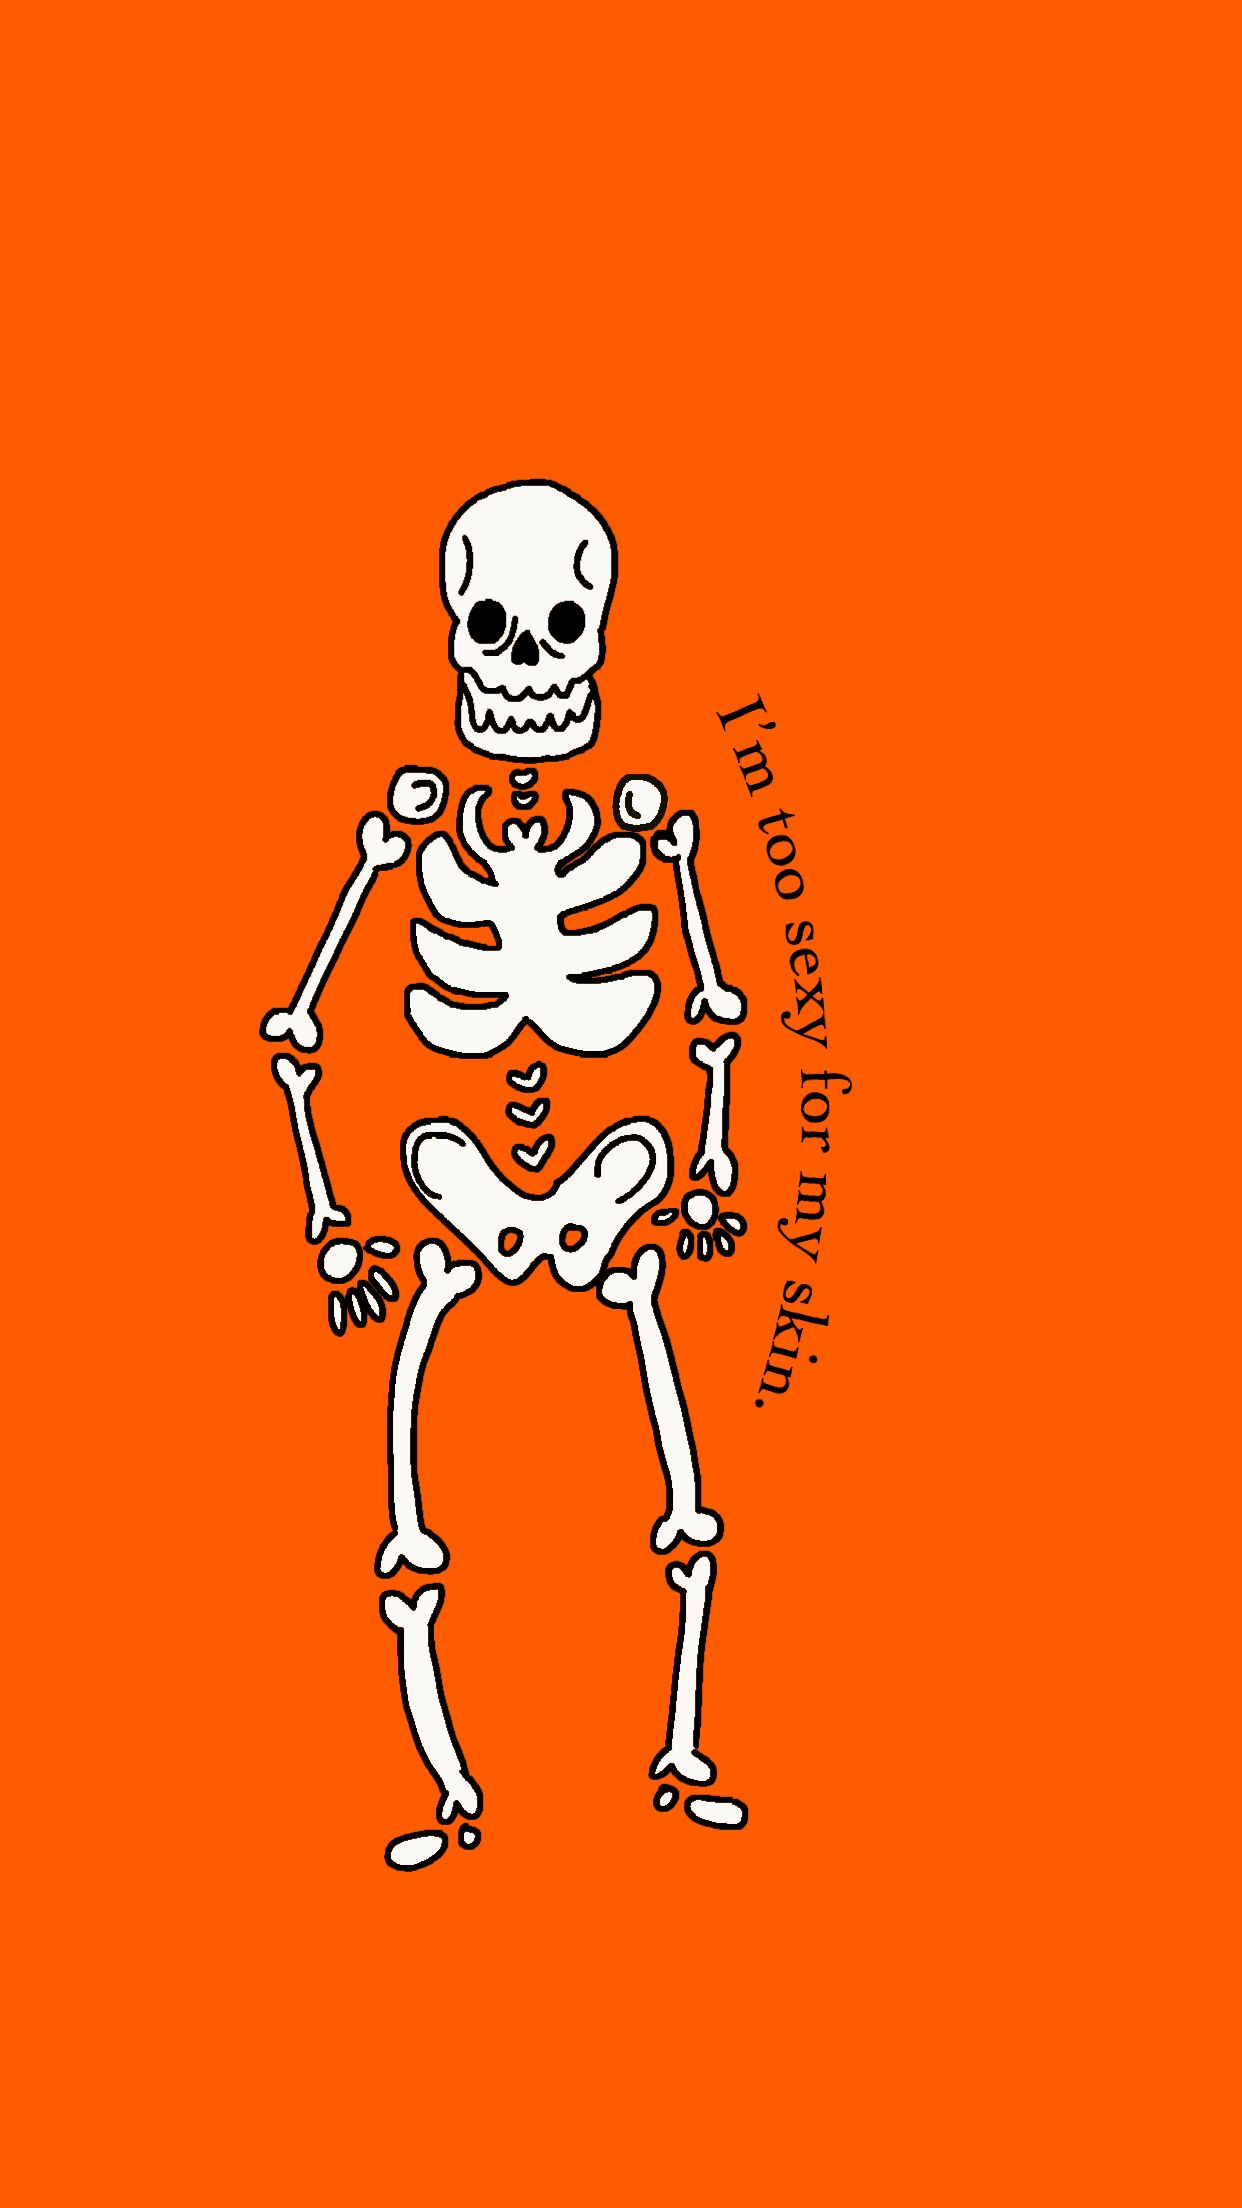 Halloween popculture words quote skeleton wallpaper